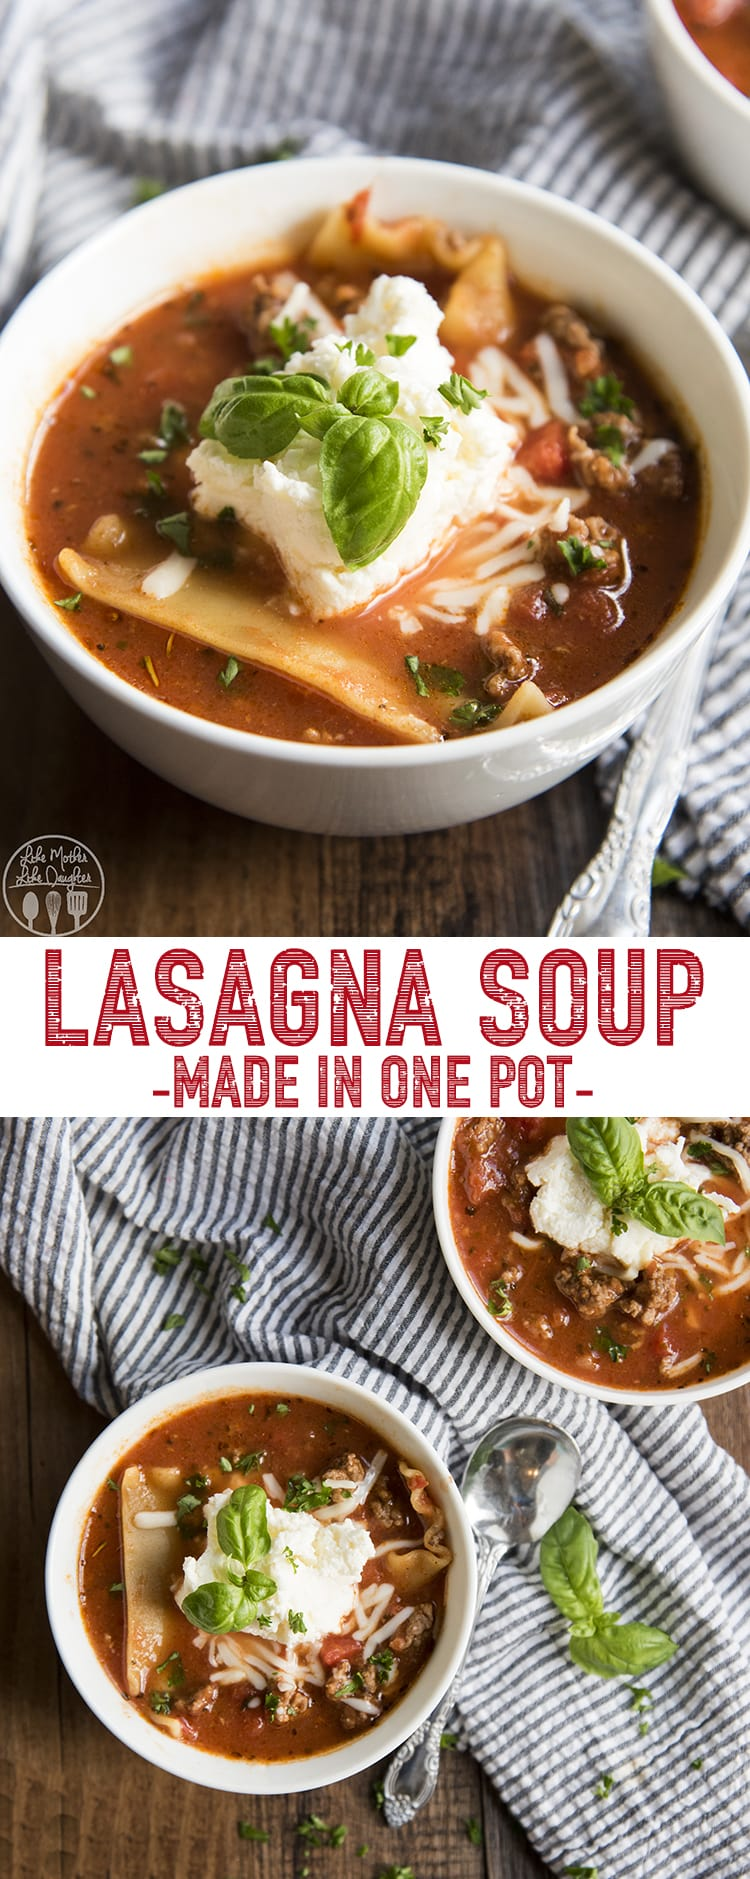 This lasagna soup is the perfect way to get the flavors of lasagna in a delicious bowl of hot, comforting soup! It's made in one pot and stuffed full of delicious Italian flavors, seasoned beef, tomatoes, and lots of cheese - just like your favorite layered lasagna. #Lasagna #LasagnaSoup #Soup #OnePot #GroundBeef #30minutedinner #homecooking #dinnerrecipe #easyrecipe #easydinner